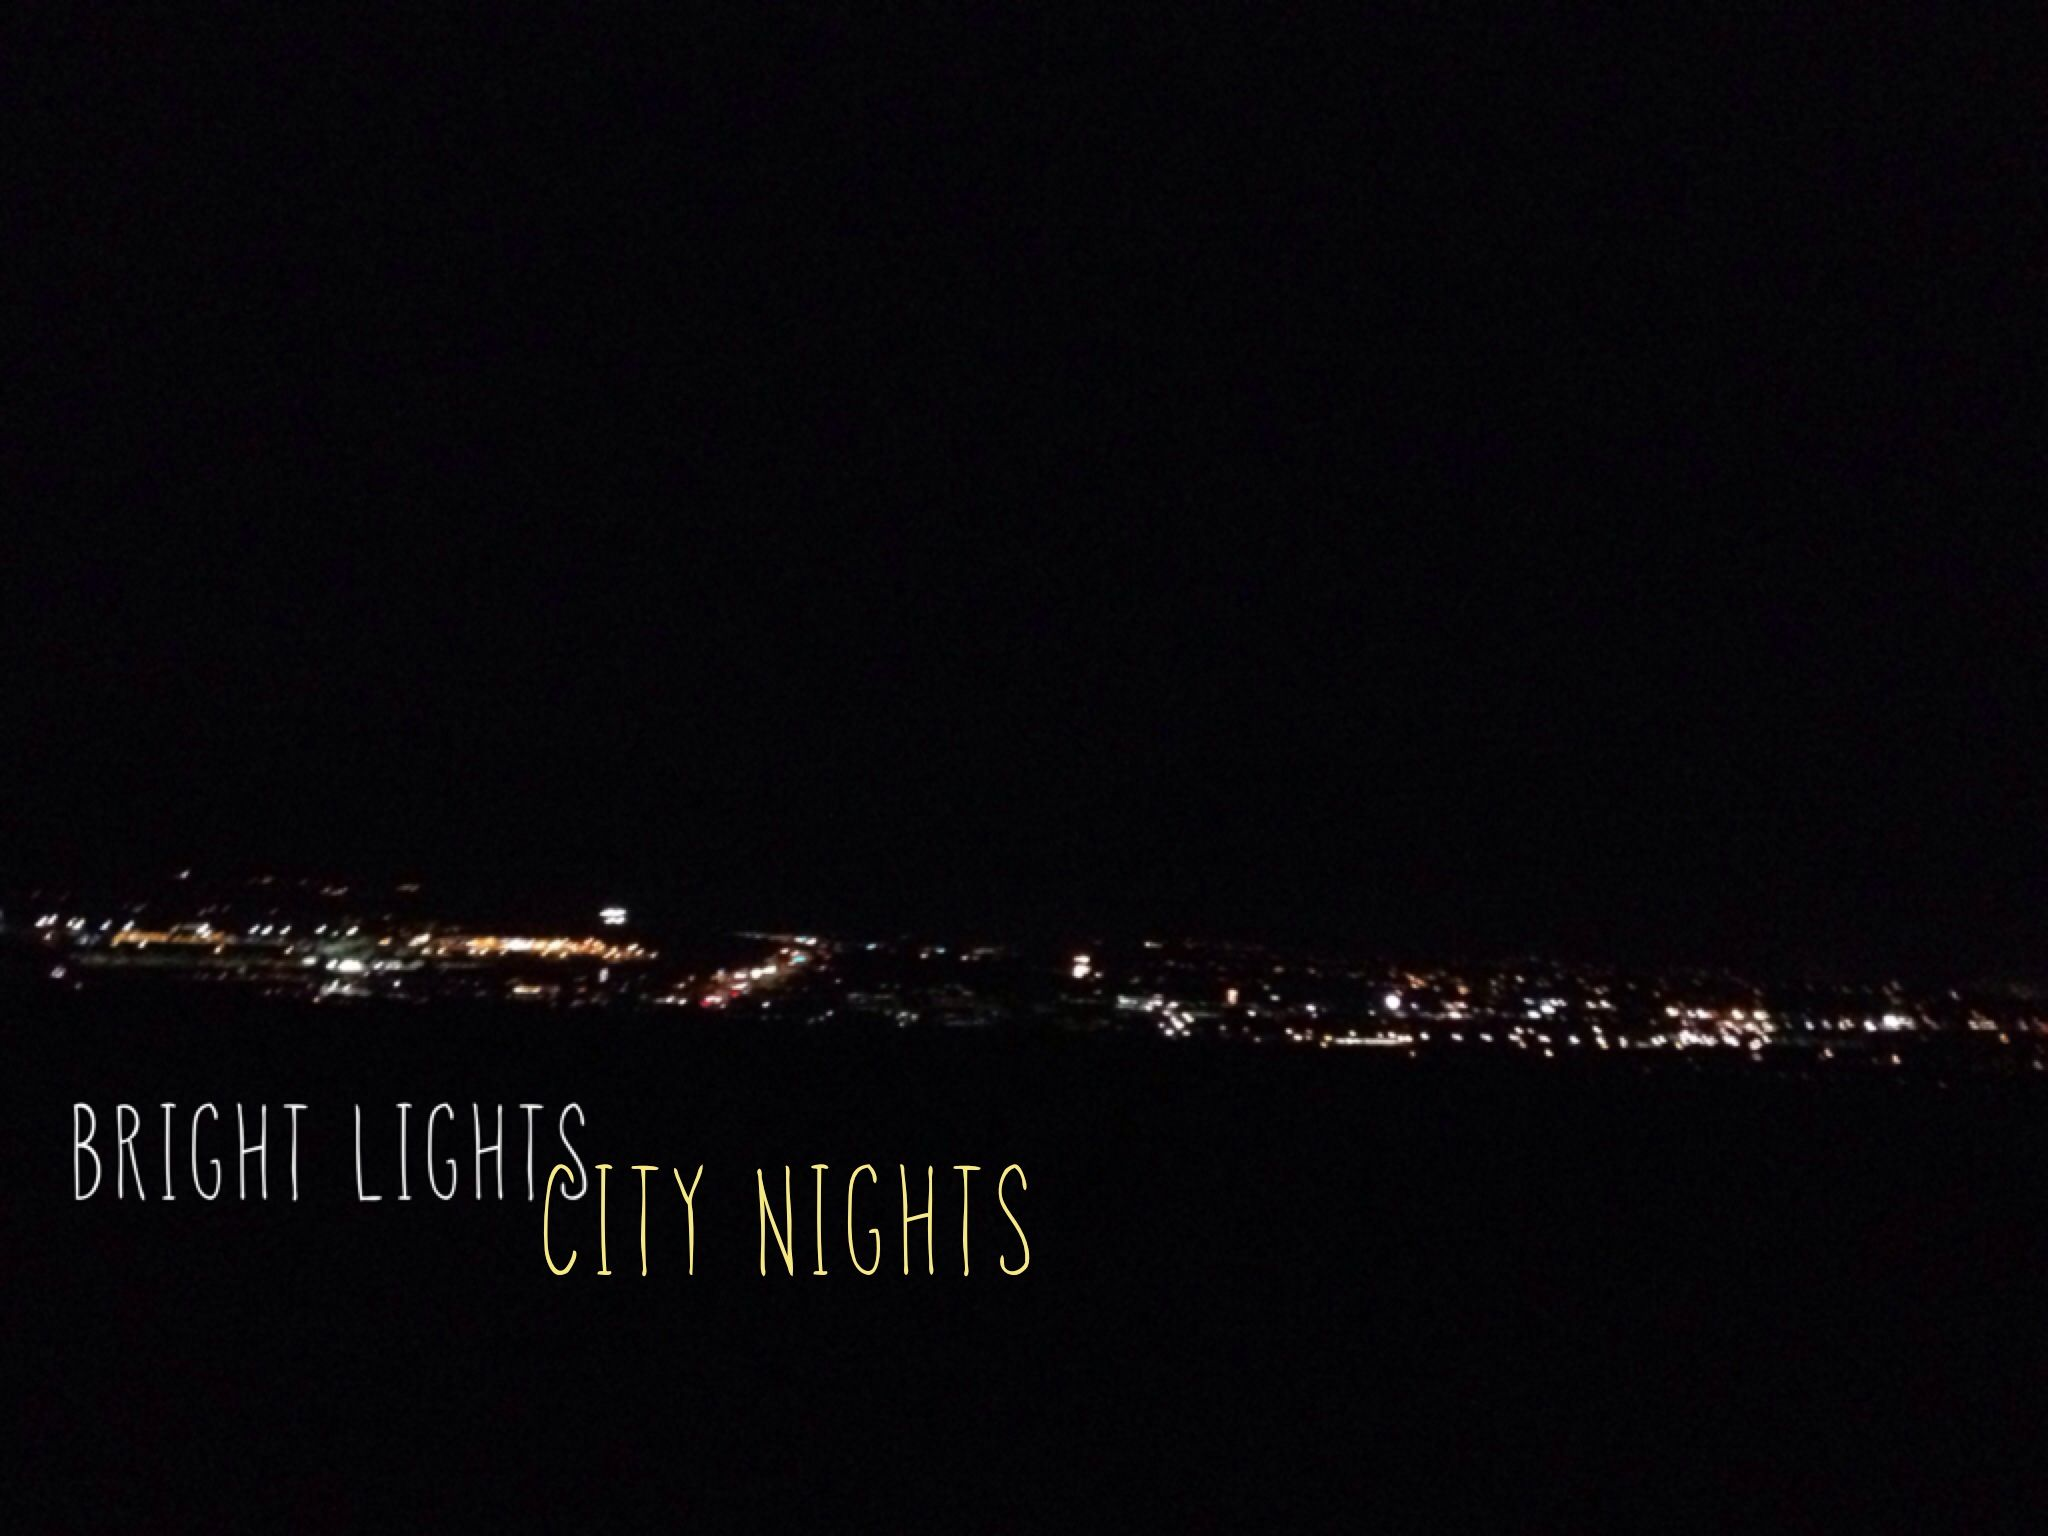 Bright Nights City Lights Quotes City Lights Quotes City